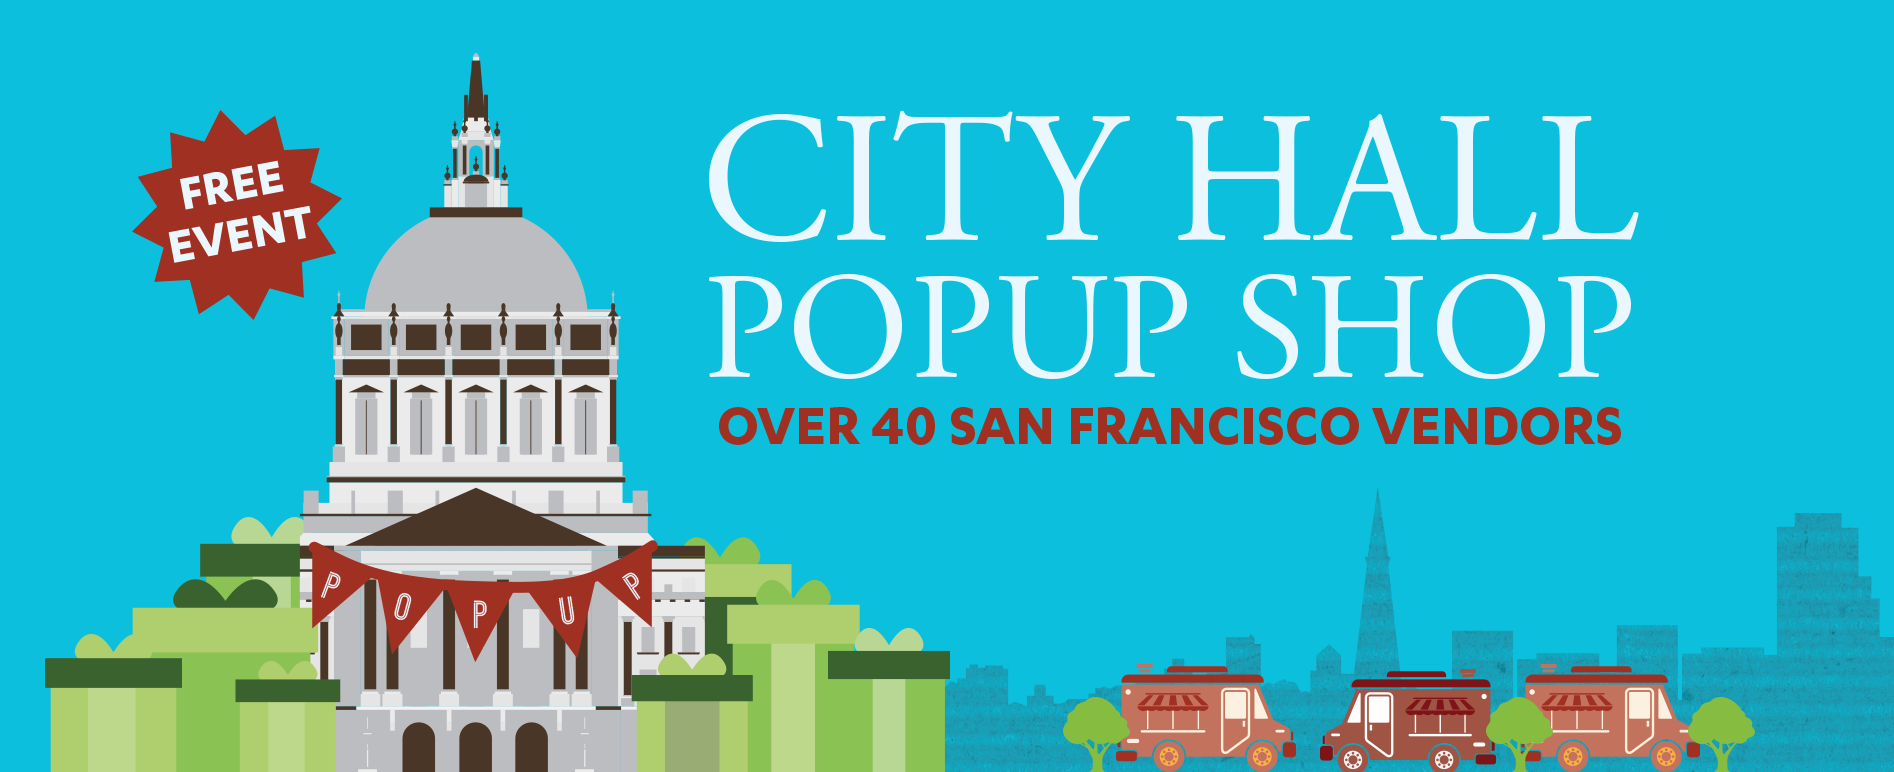 City Hall Popup Shop